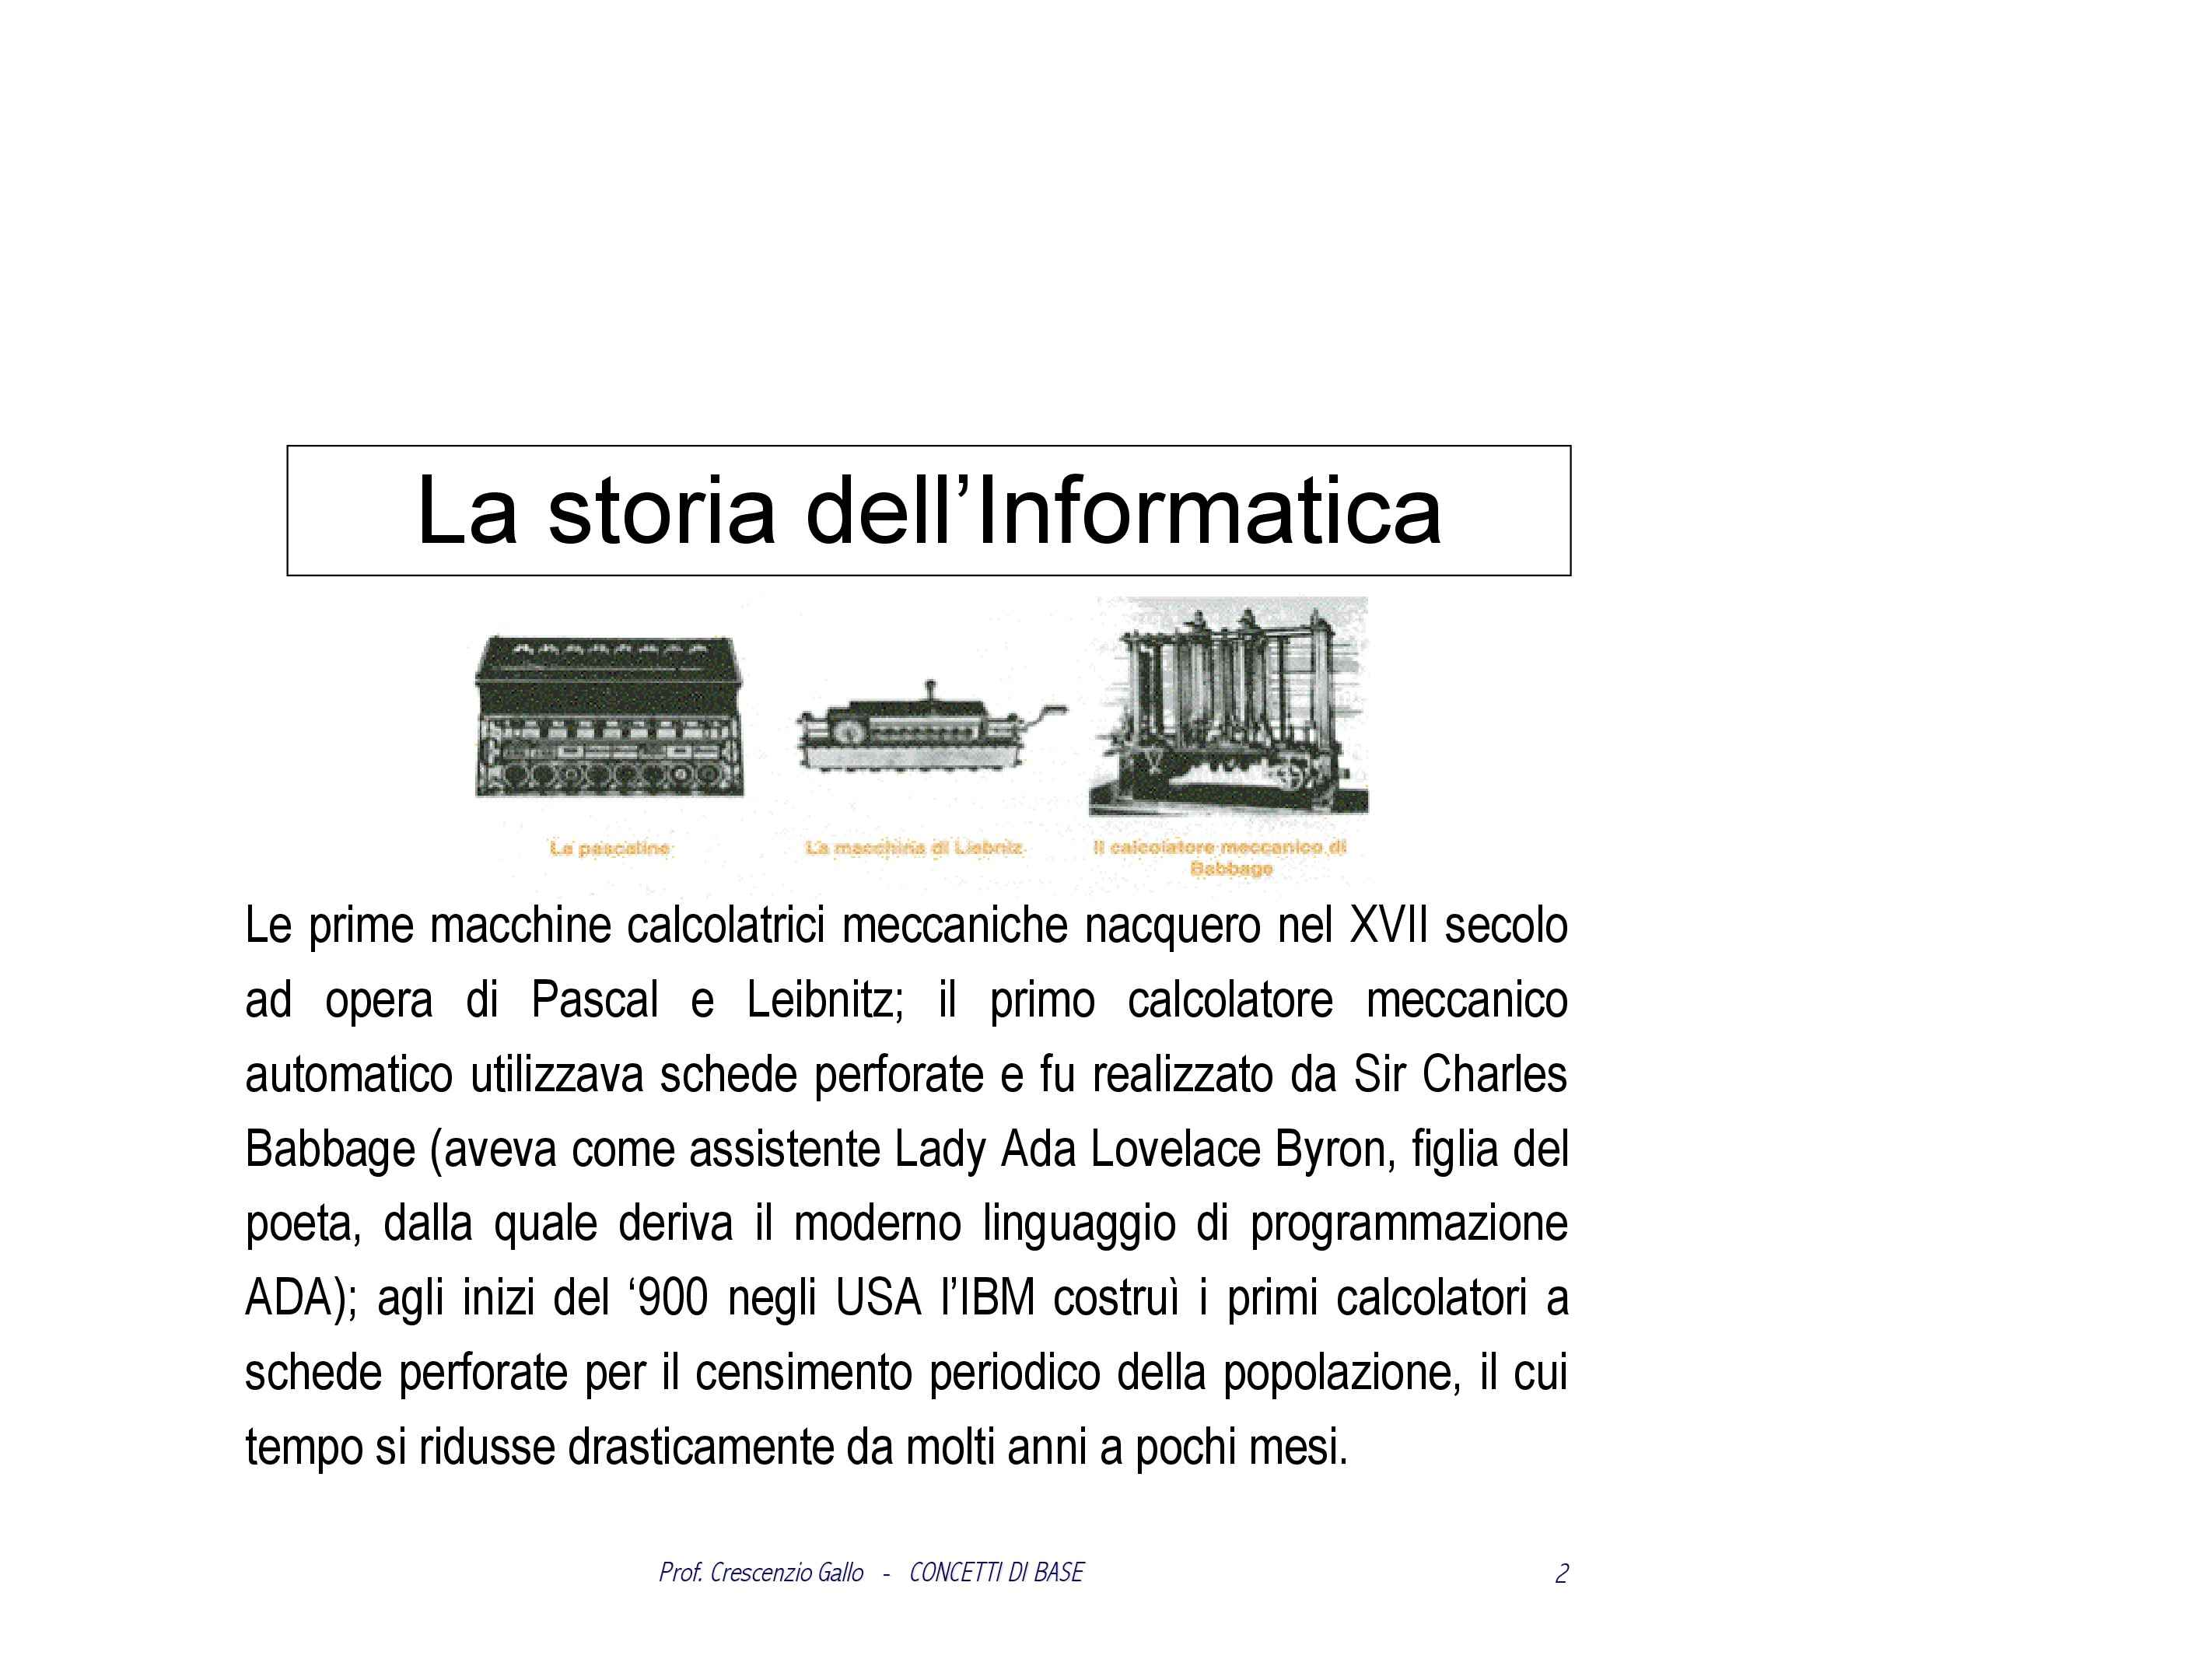 Informatica - concetti di base in informatica - Dispensa